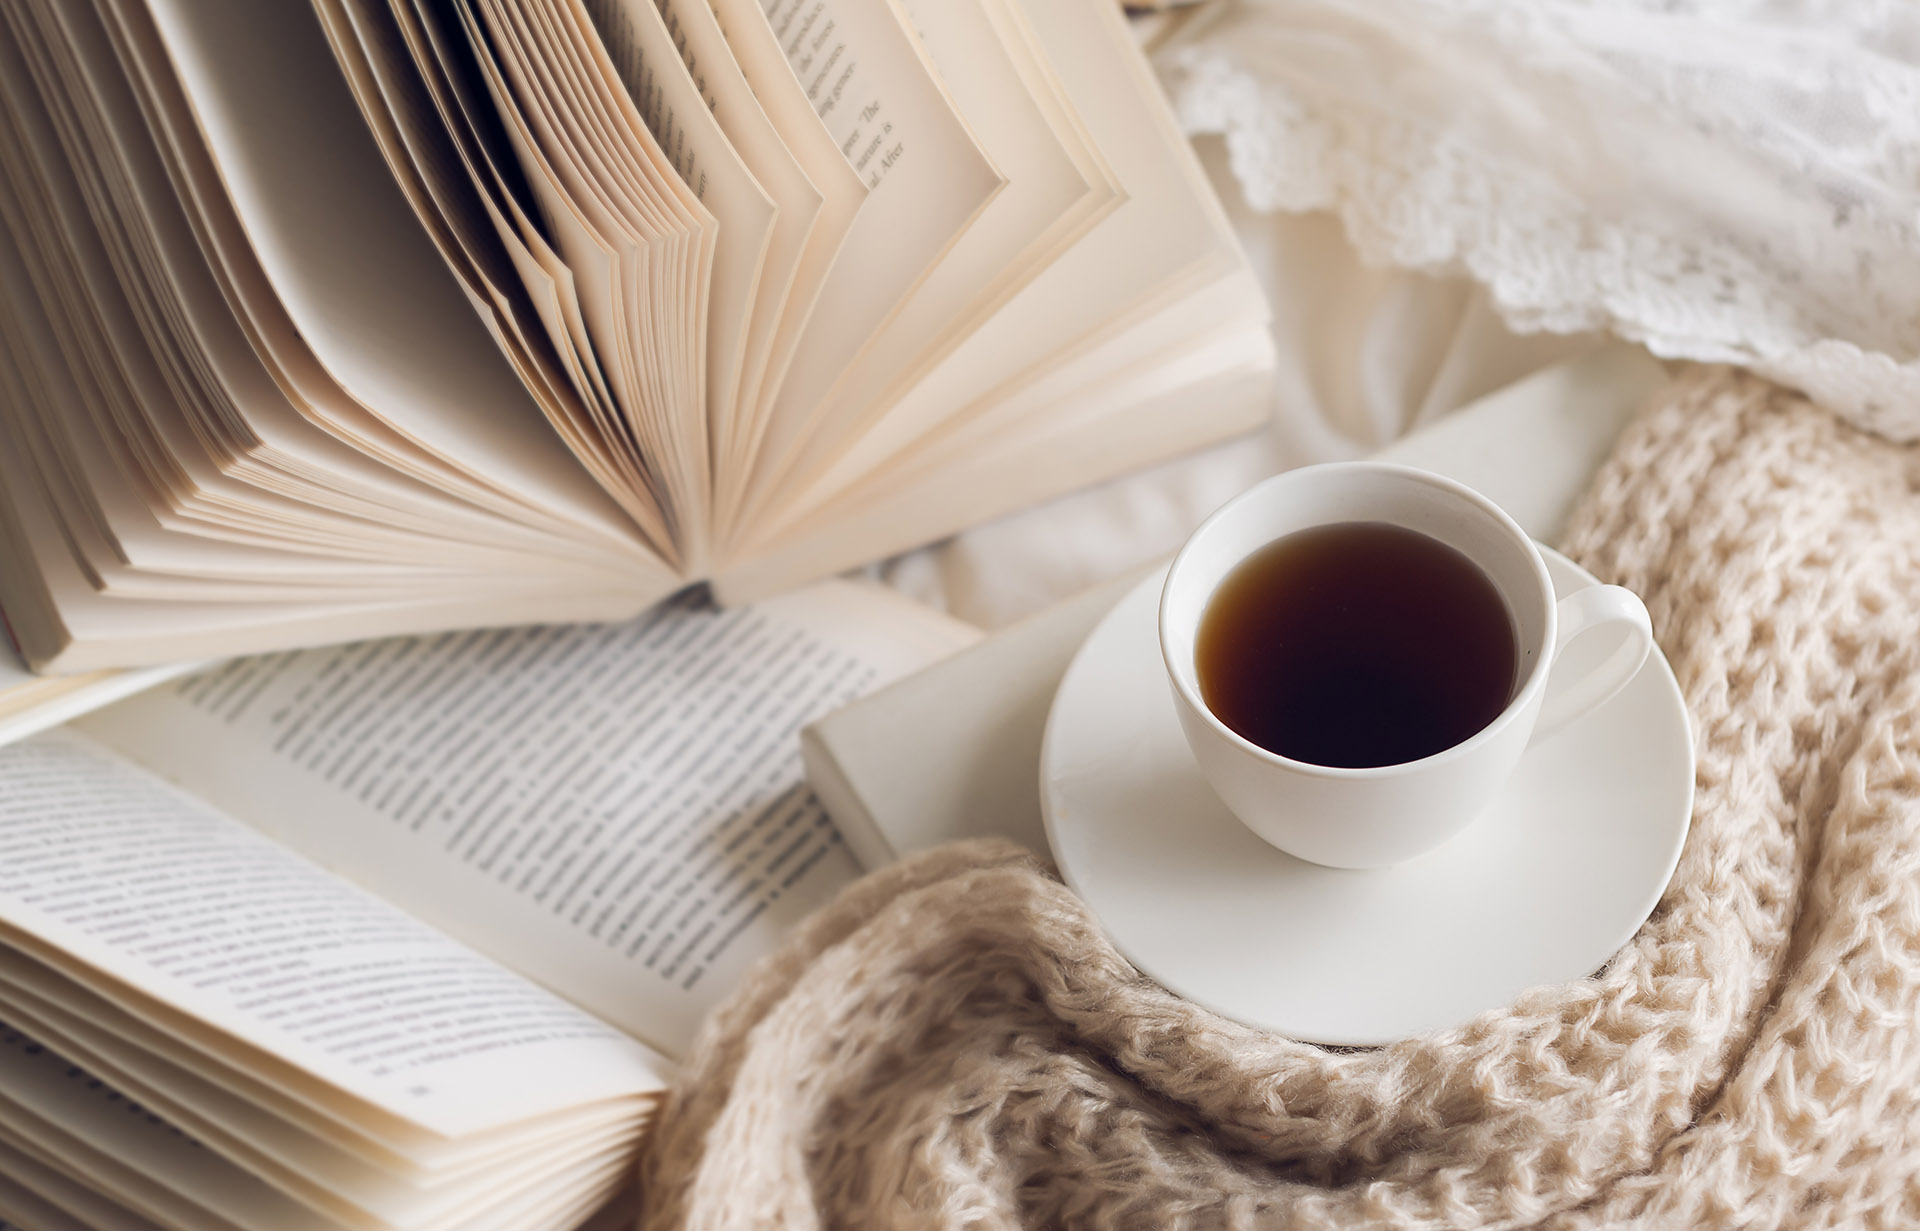 Several books are open on a white bed. Next to the book is a cup of coffee, and oatmeal-colored knit blankets.